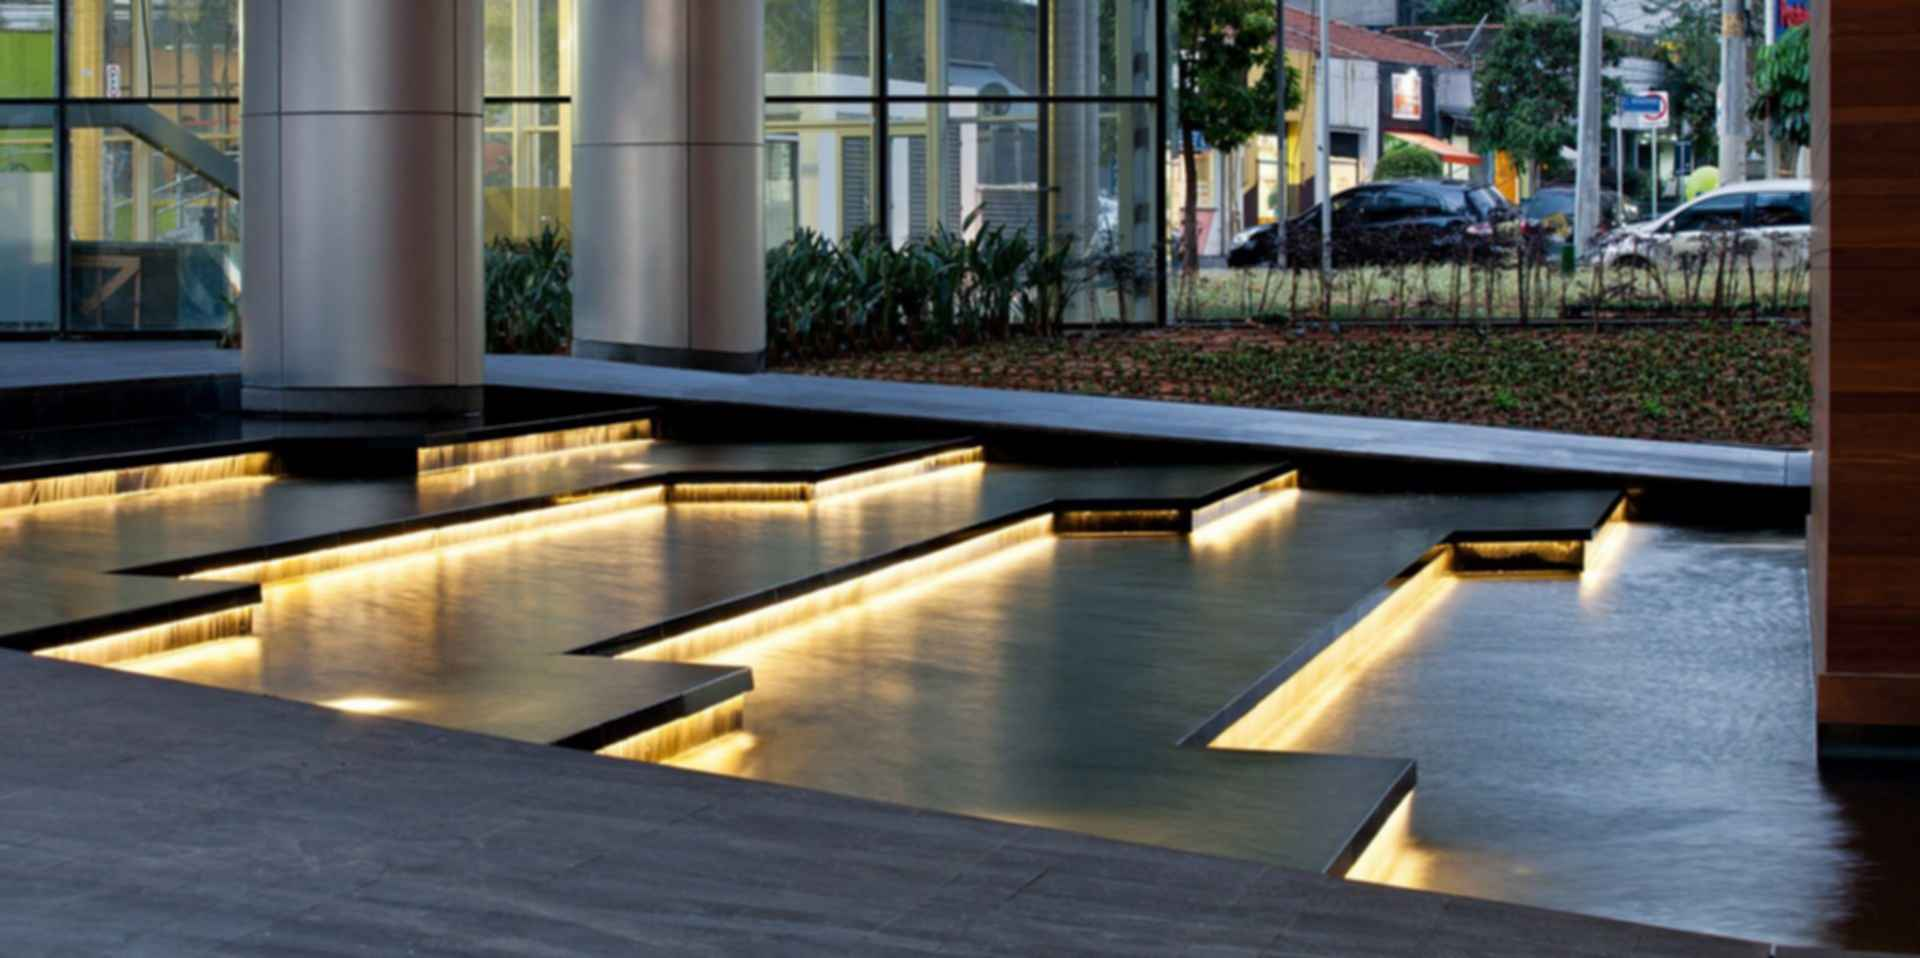 Infinity Tower KPF - Exterior/Water Feature